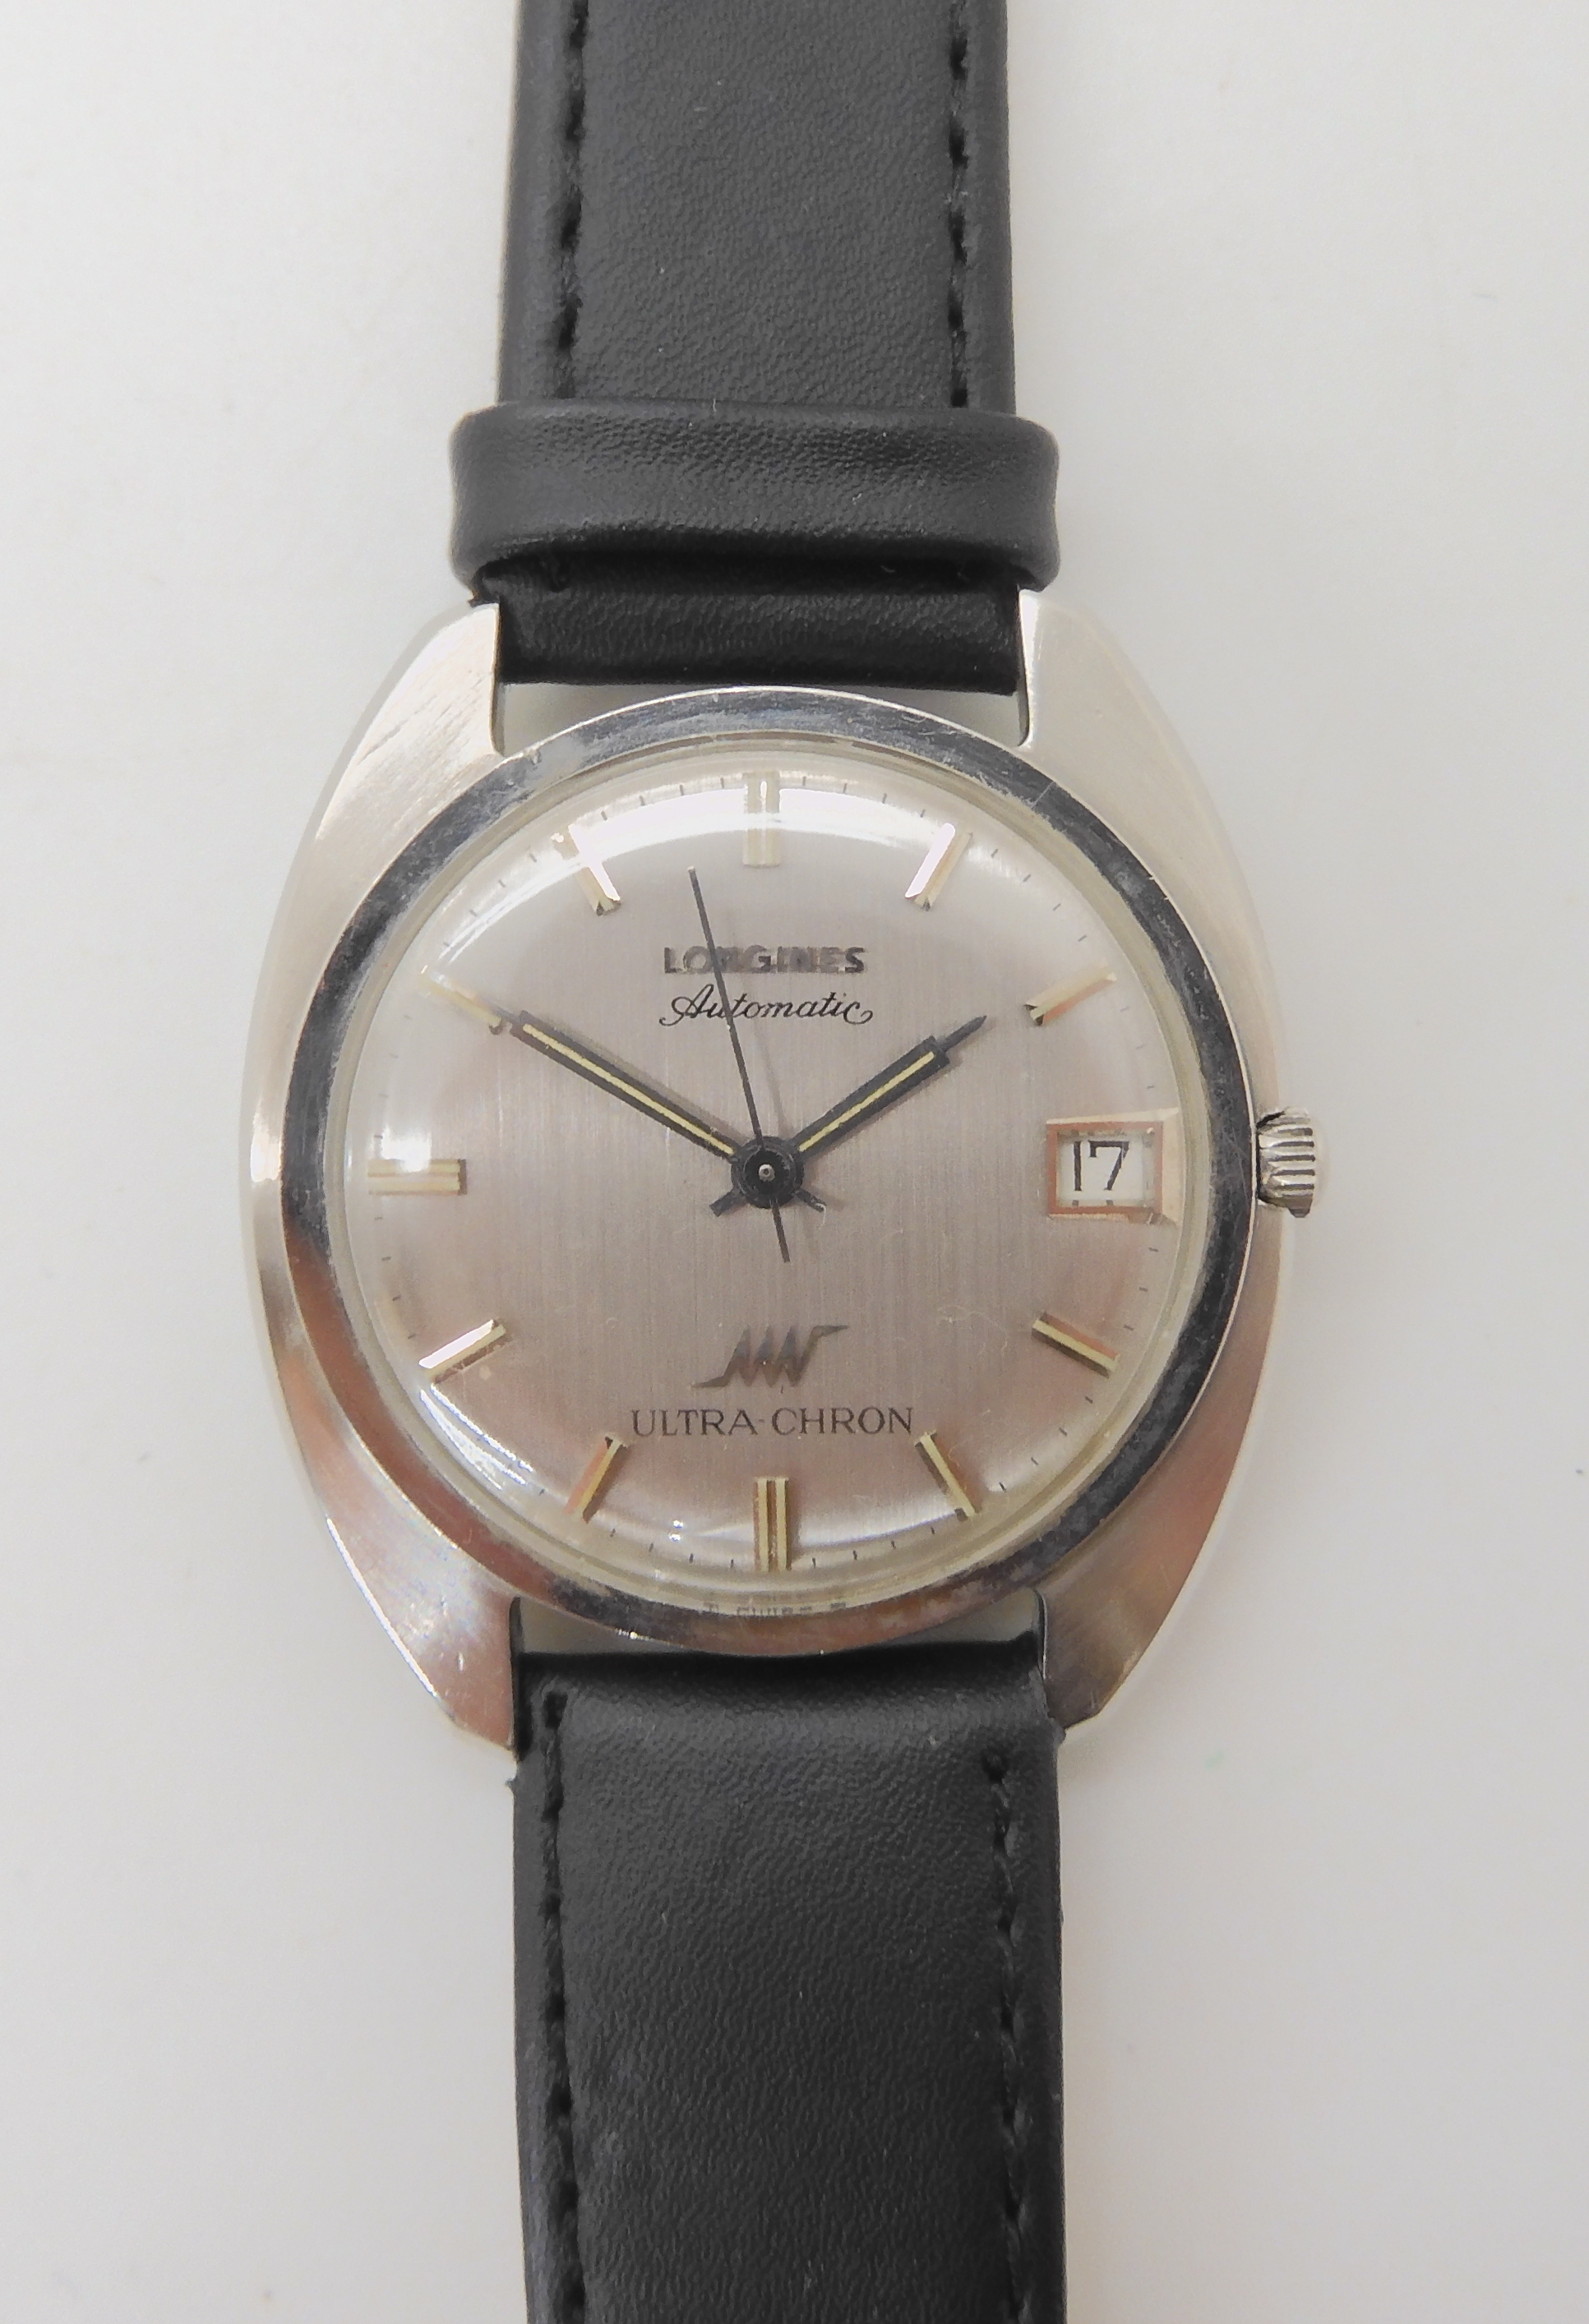 A GENTS LONGINES AUTOMATIC ULTRA CHRON with brushed silvered dial silver coloured numerals, hands - Image 2 of 4